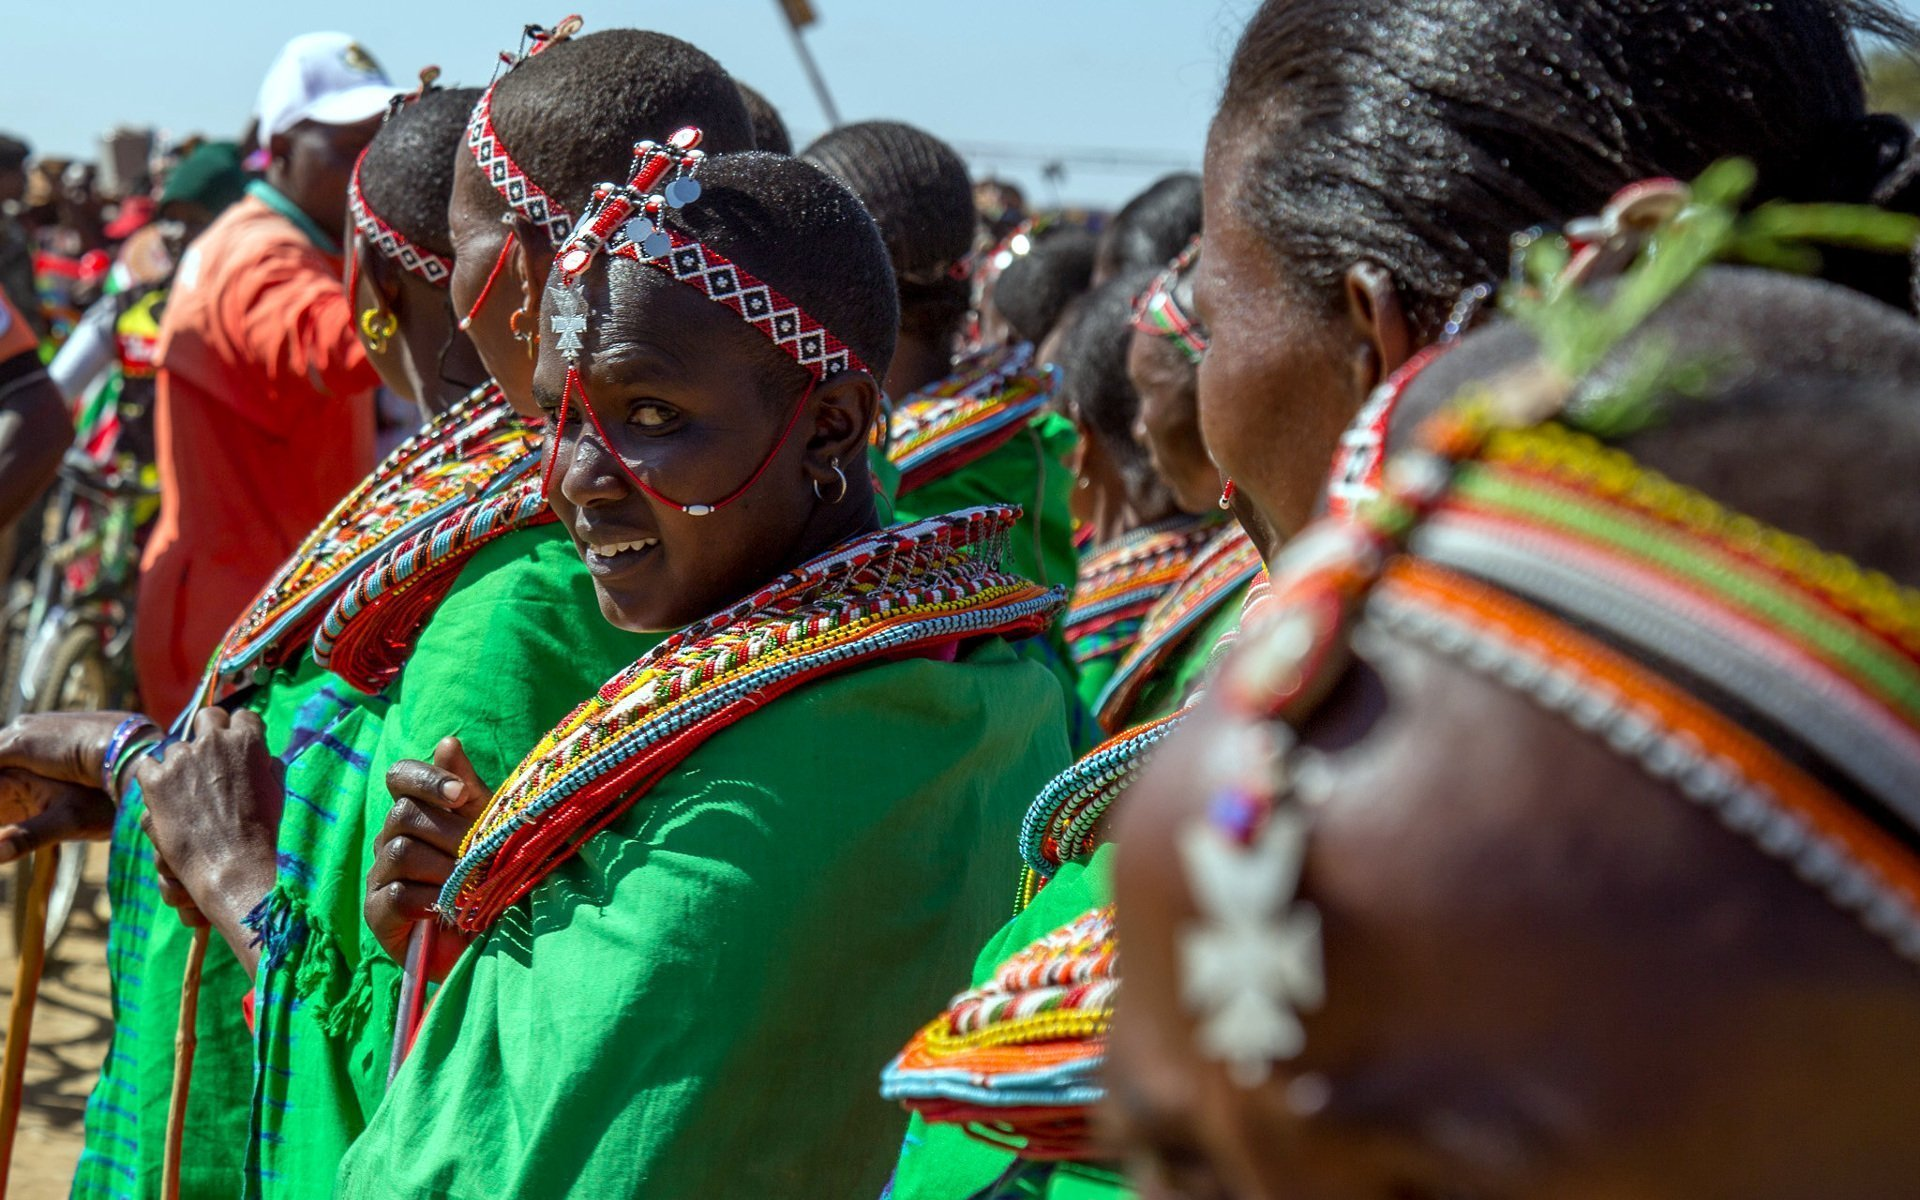 As there are no caves in present-day Turkana-land (at least east of the Ugandan border), the Turkana must have migrated from elsewhere.